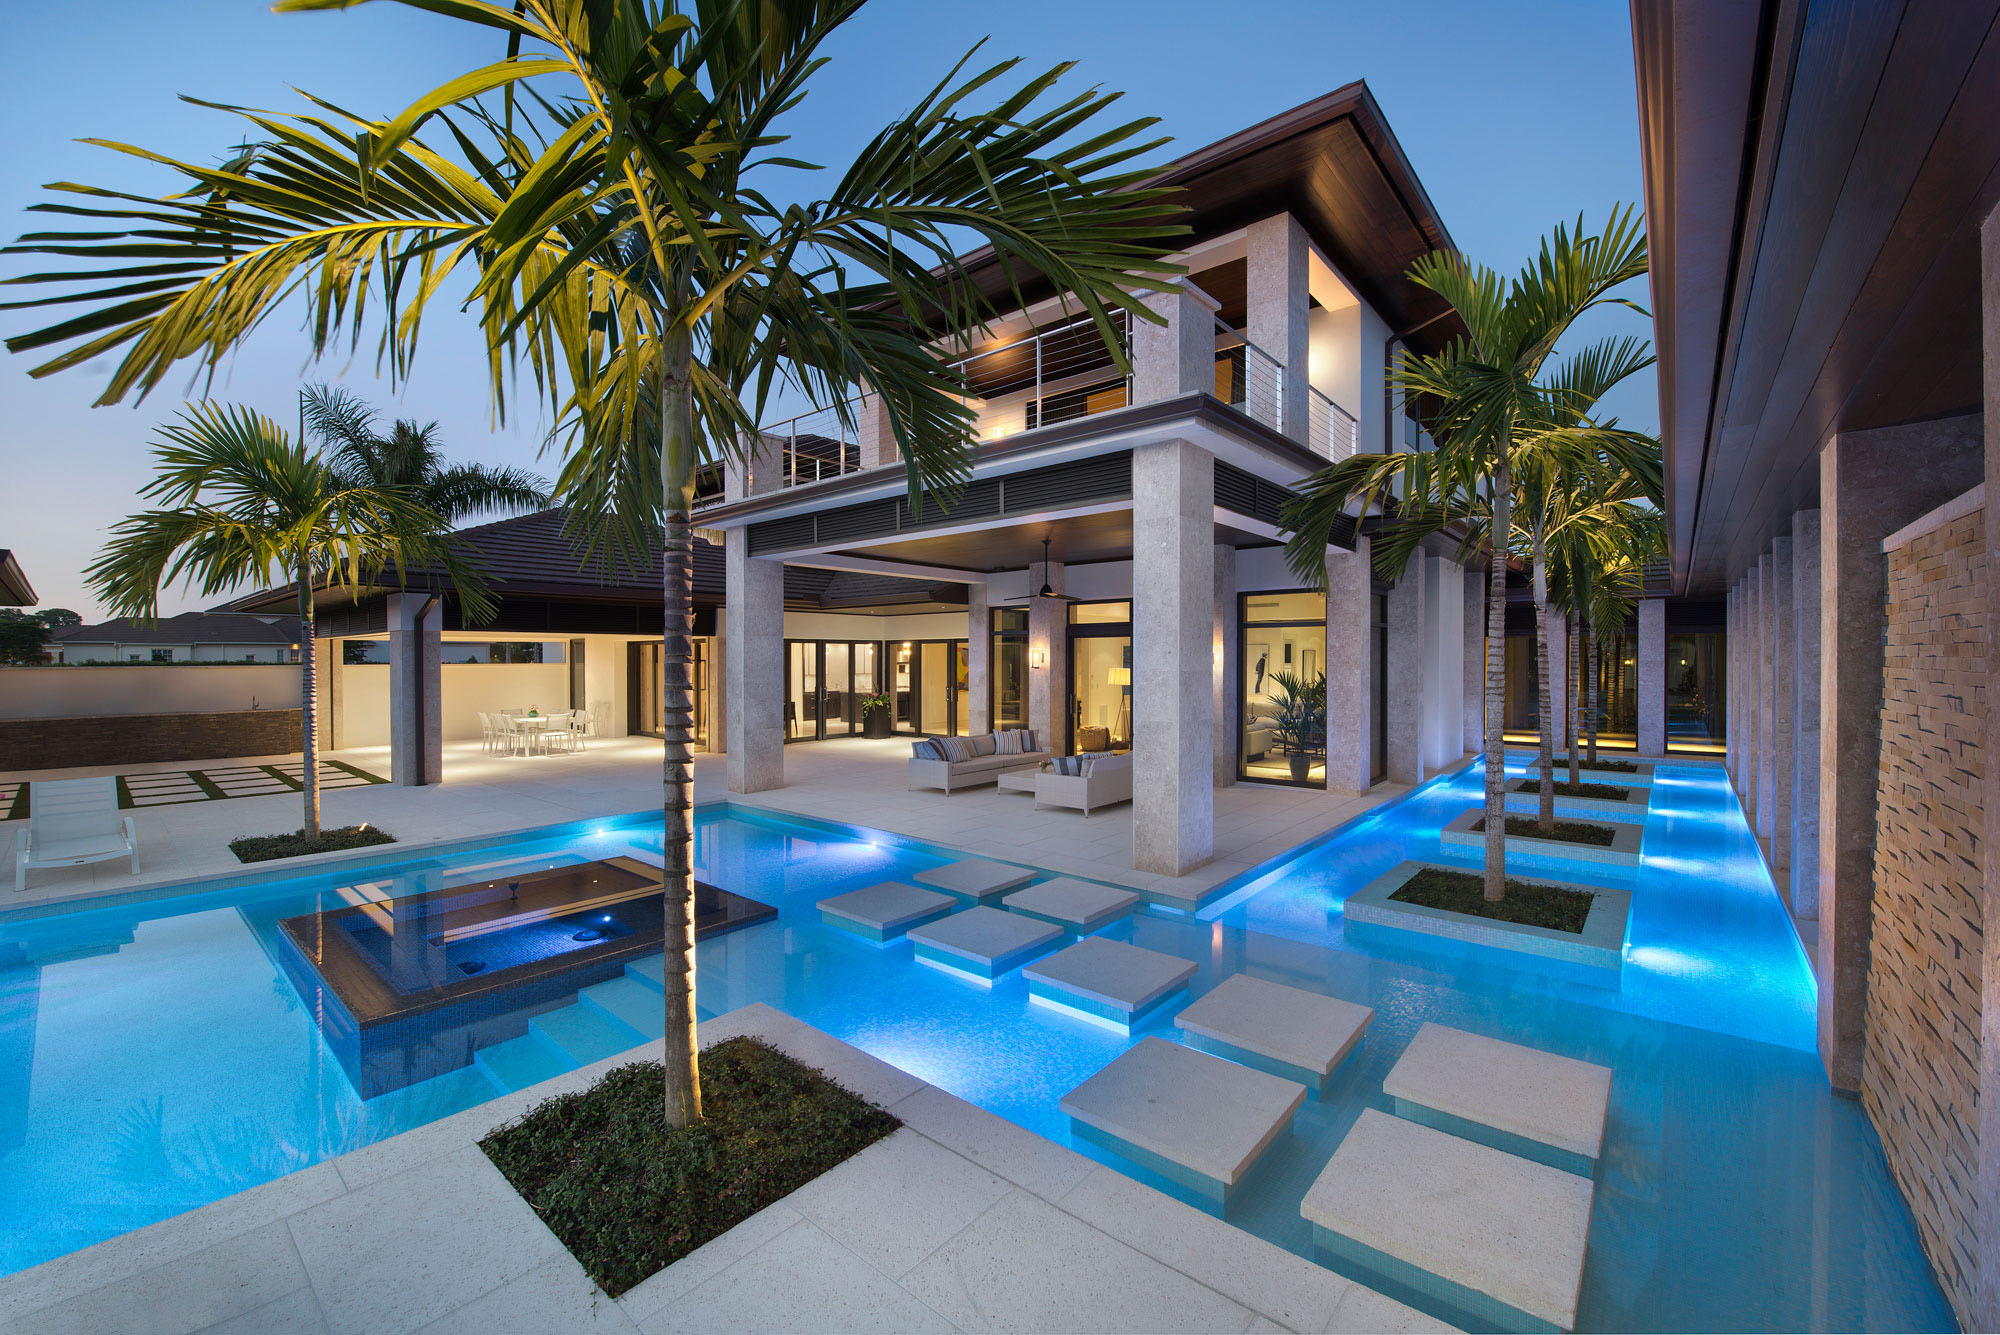 Custom dream home in florida with elegant swimming pool for Pool design villa